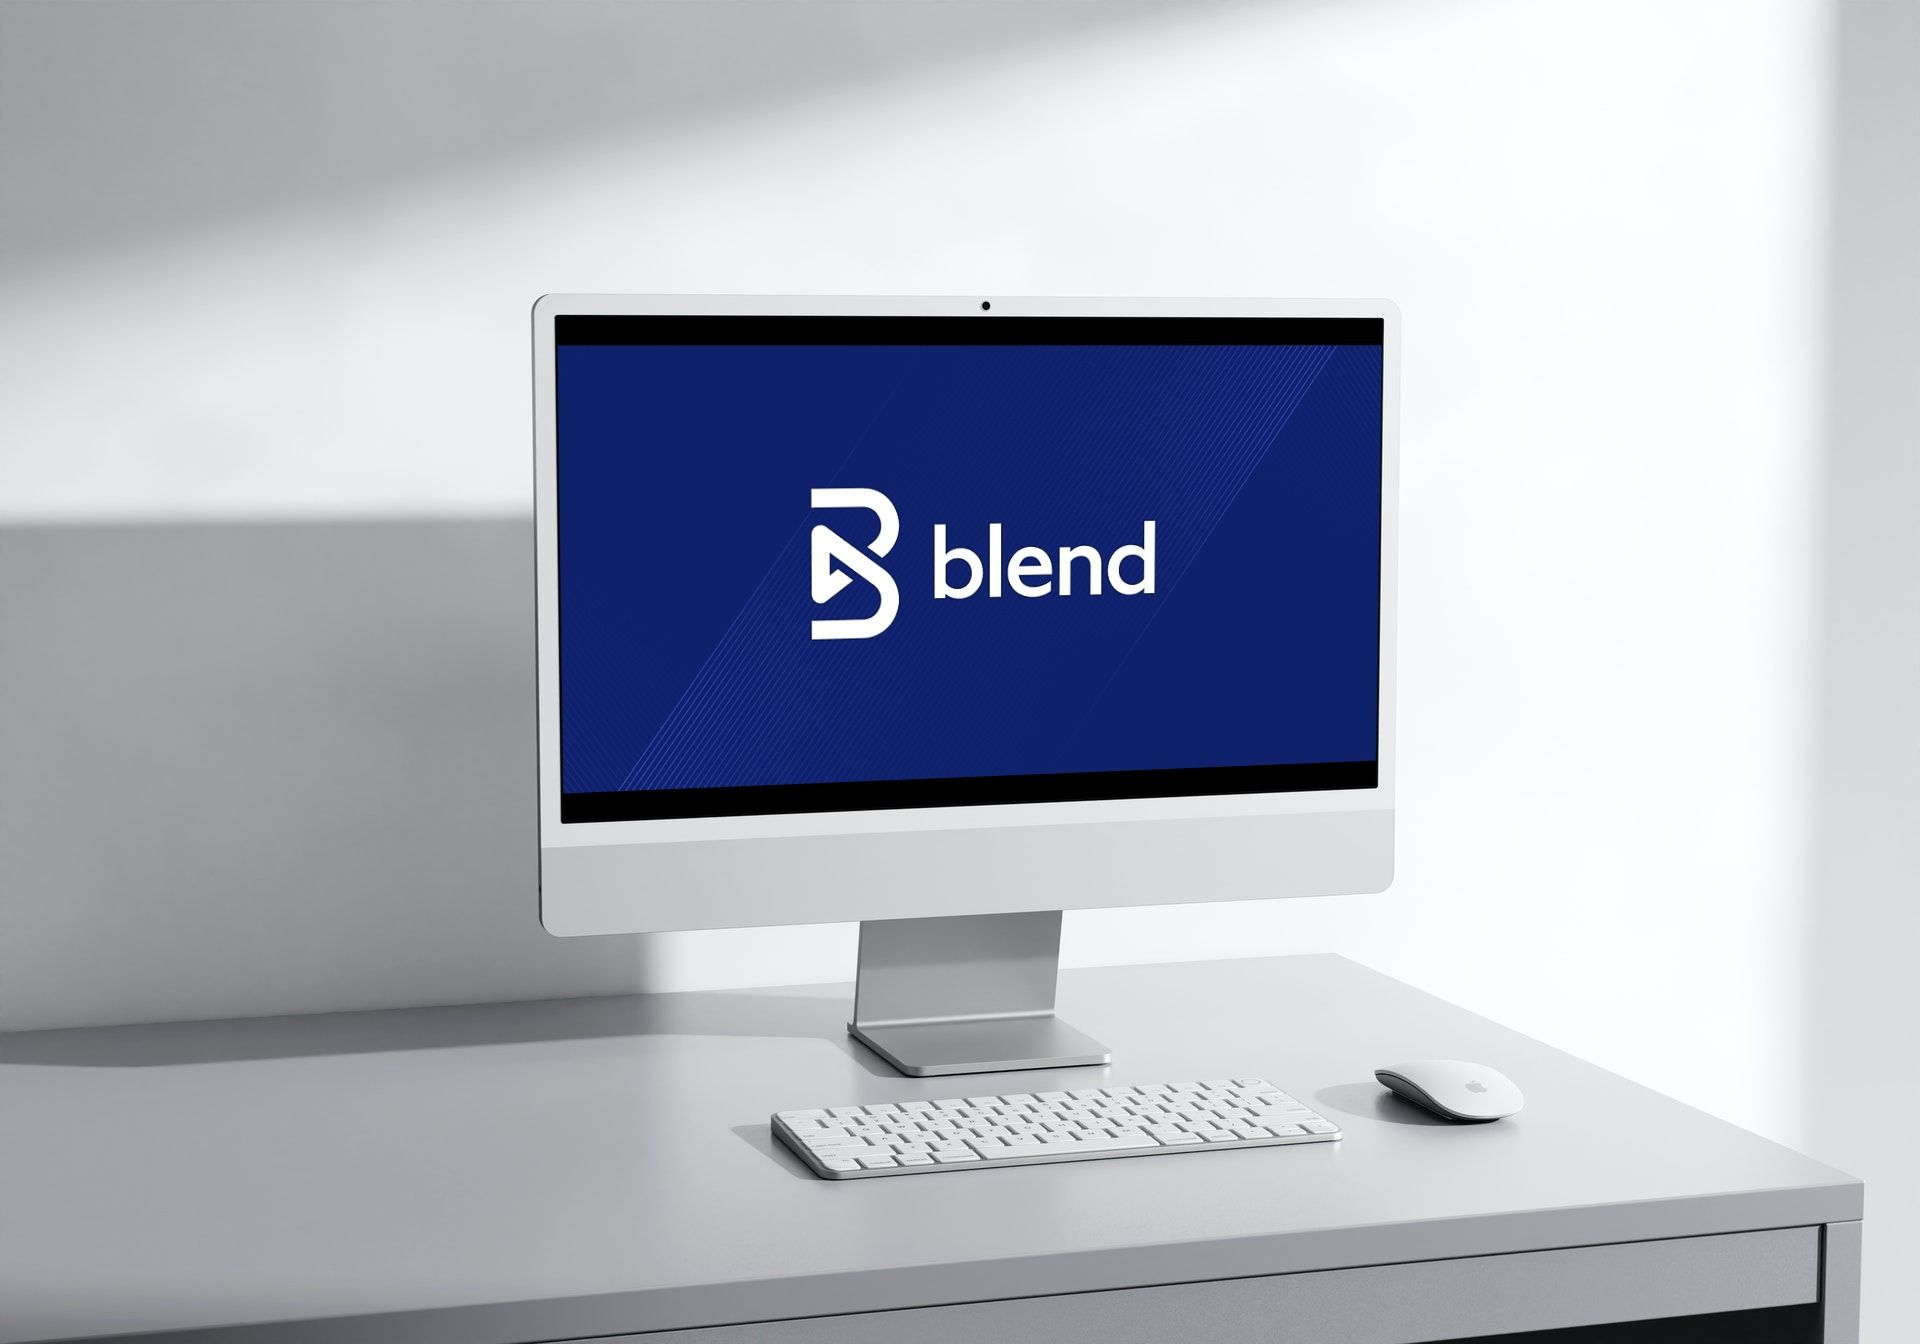 Blend Initial Public Offering